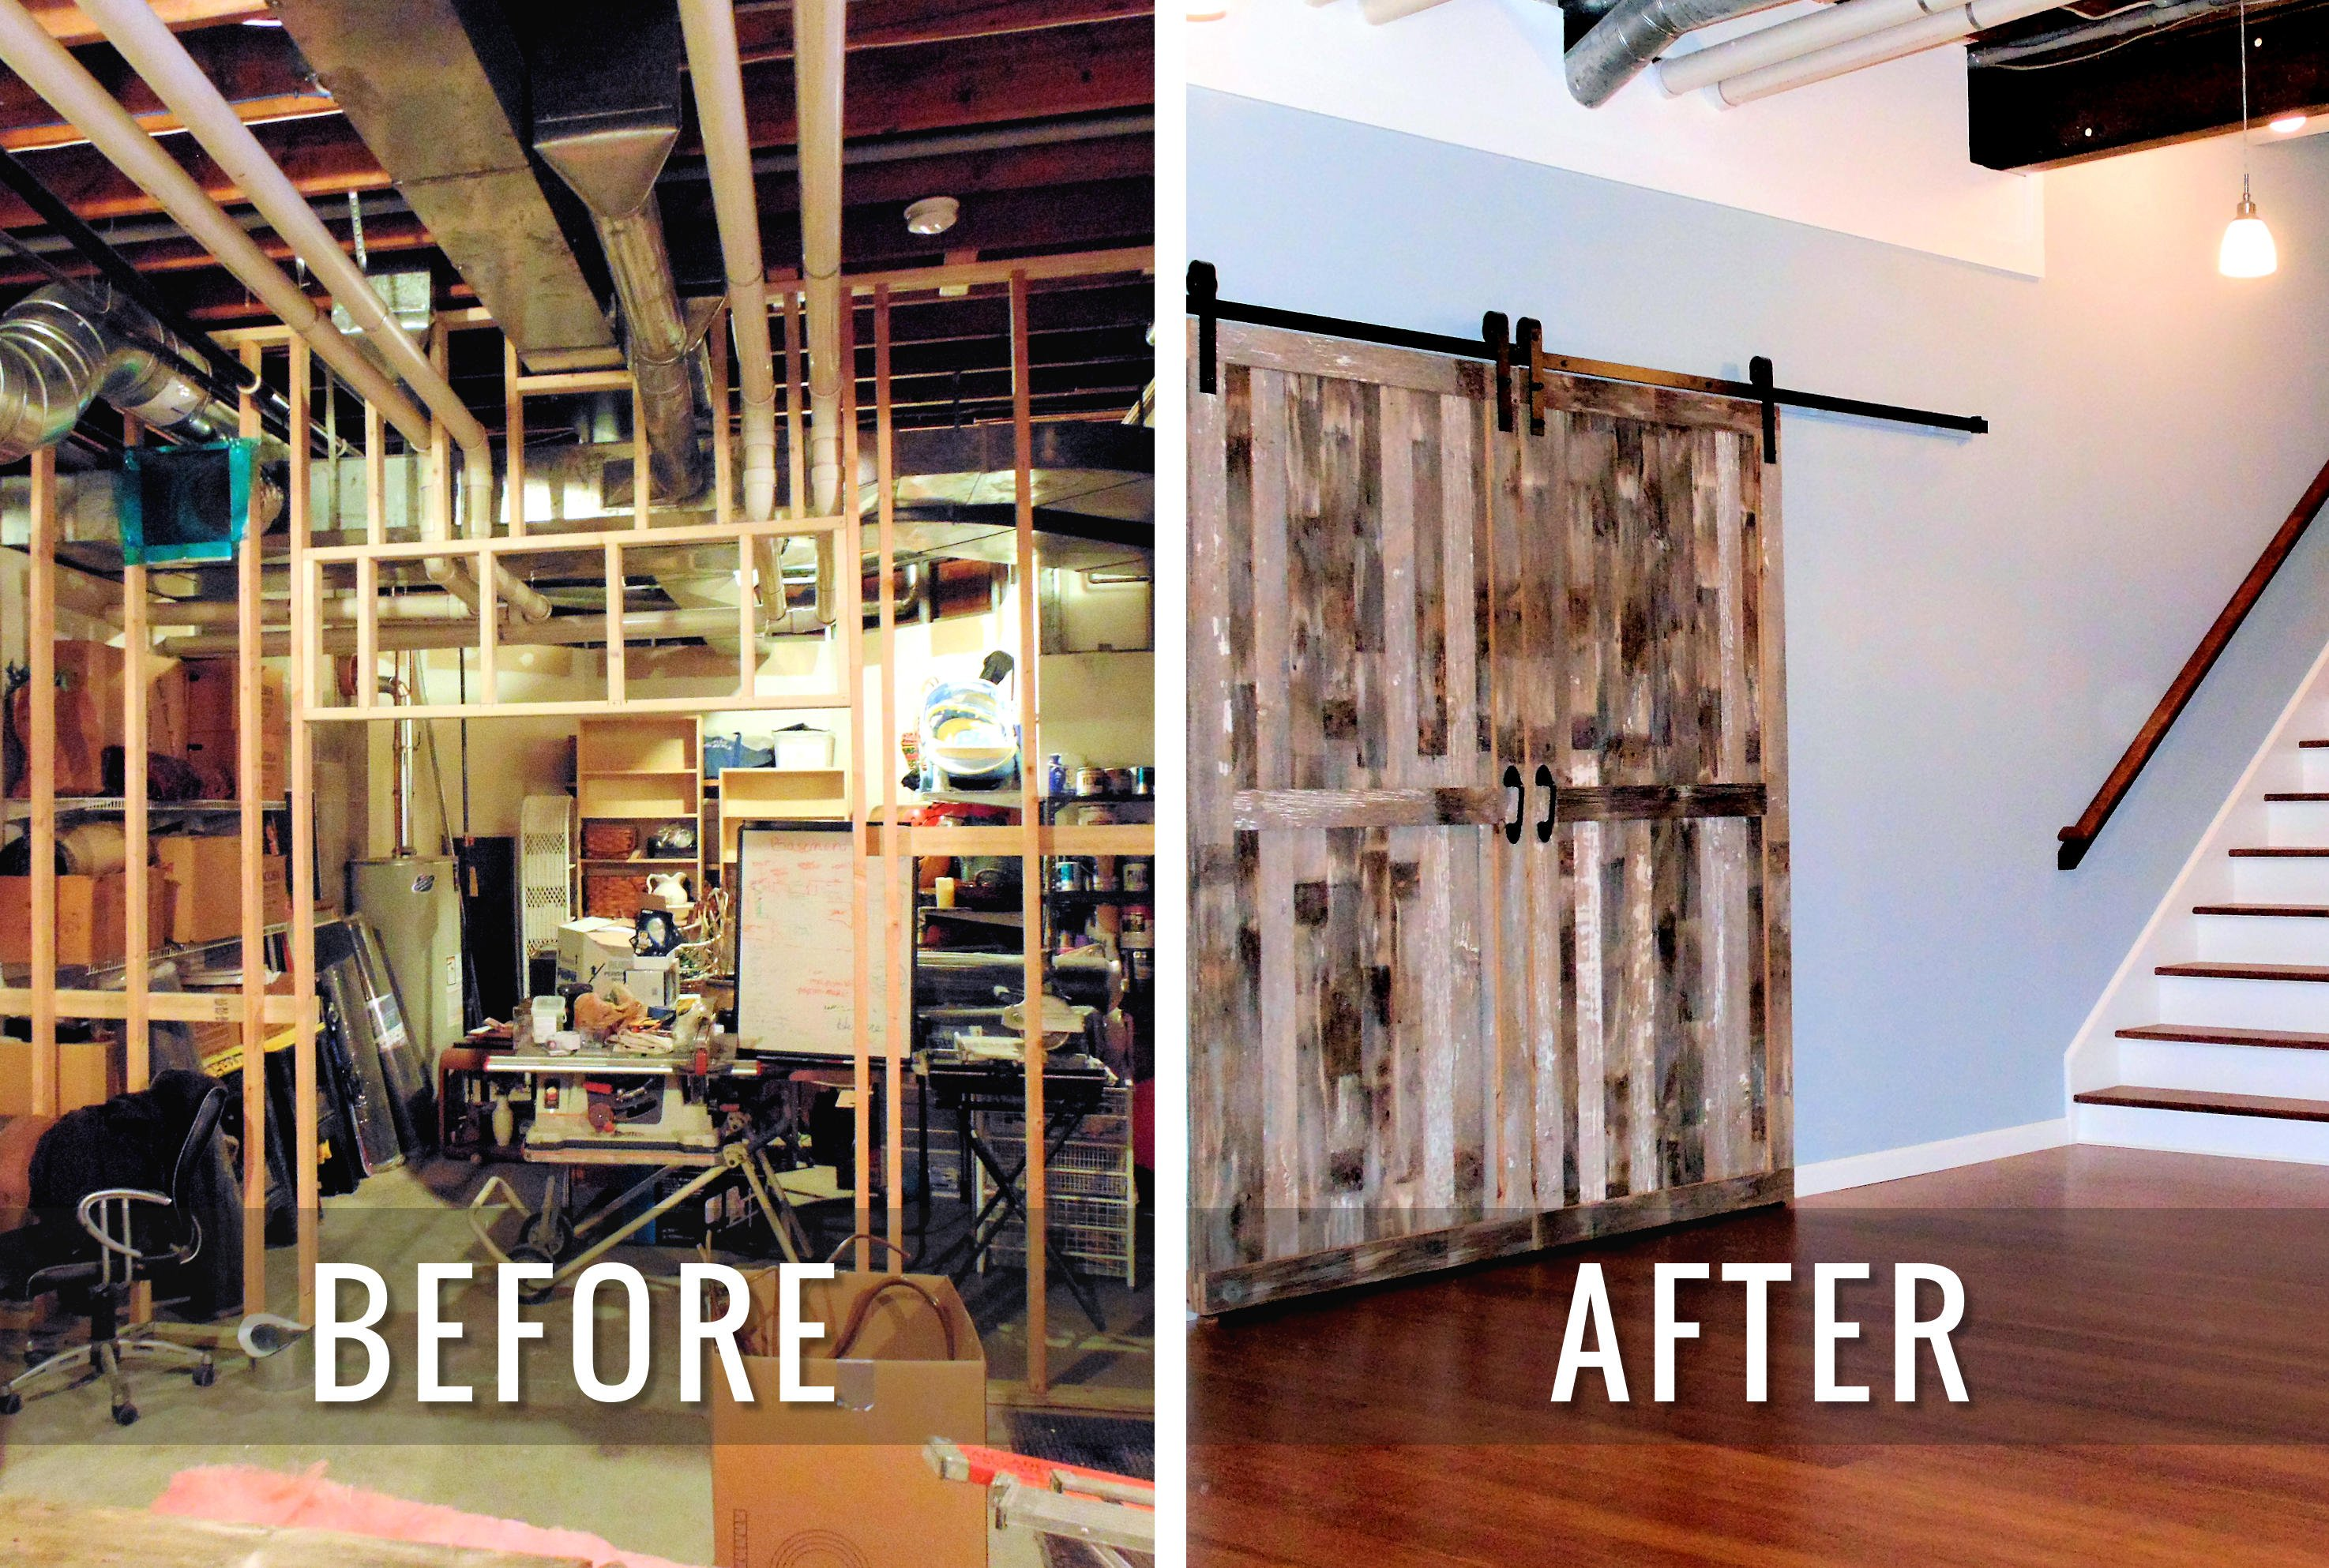 J & M Contractors — Before and After Basement Remodel 1